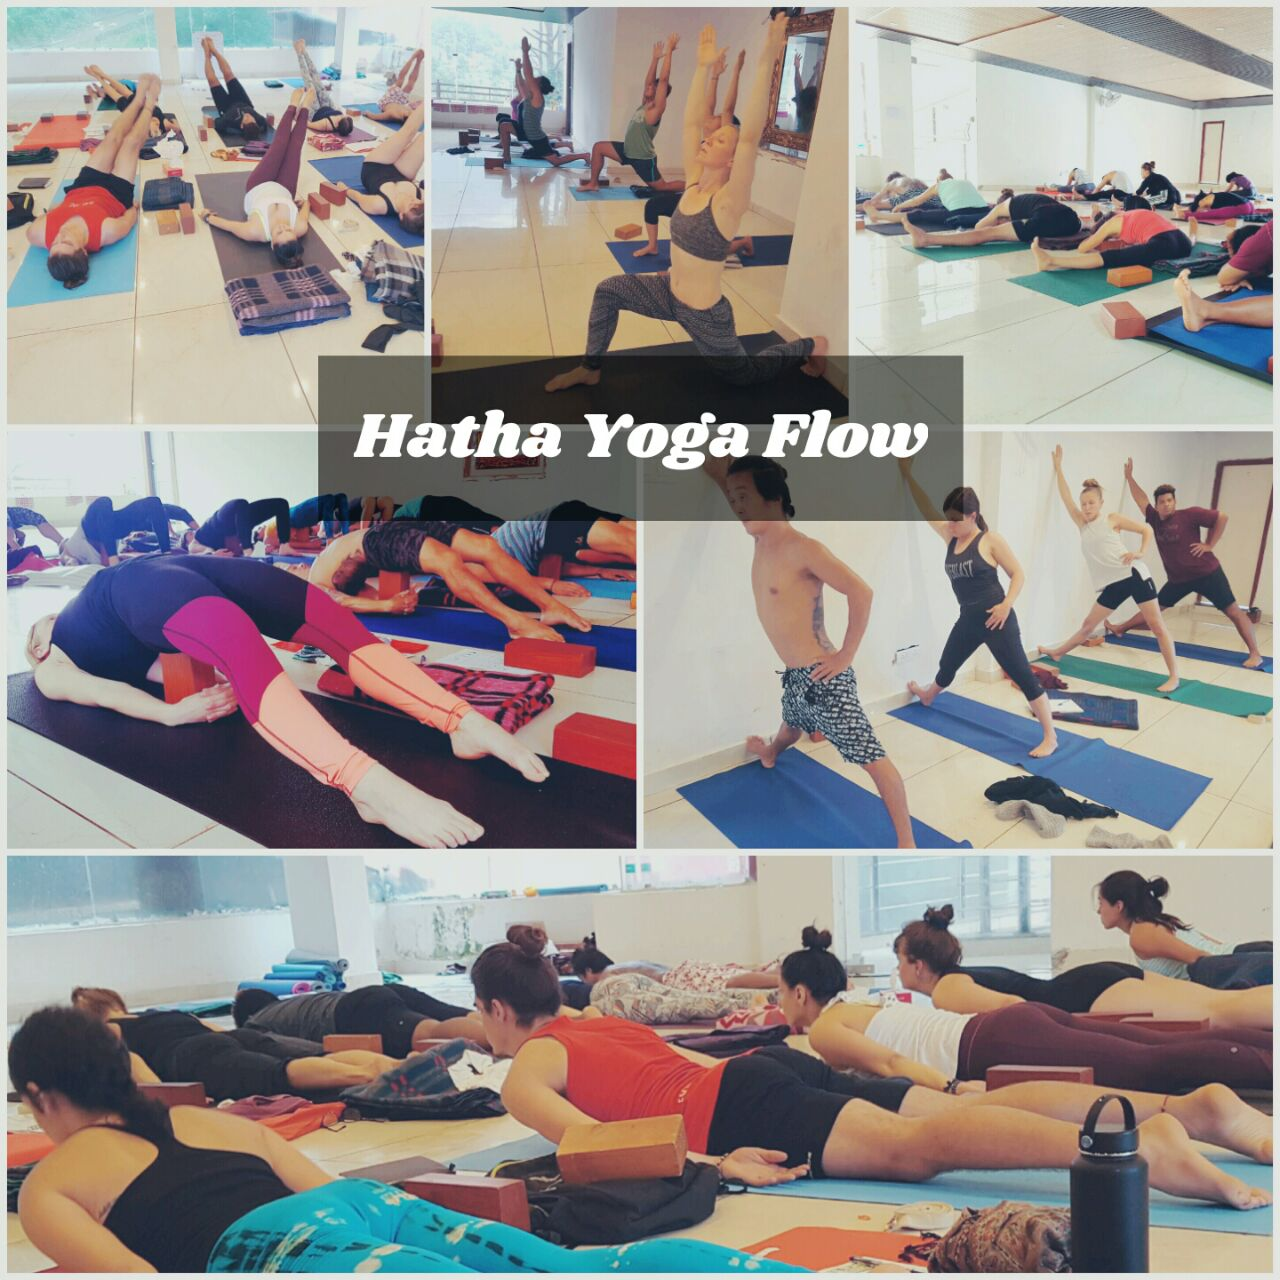 Hatha yoga flow